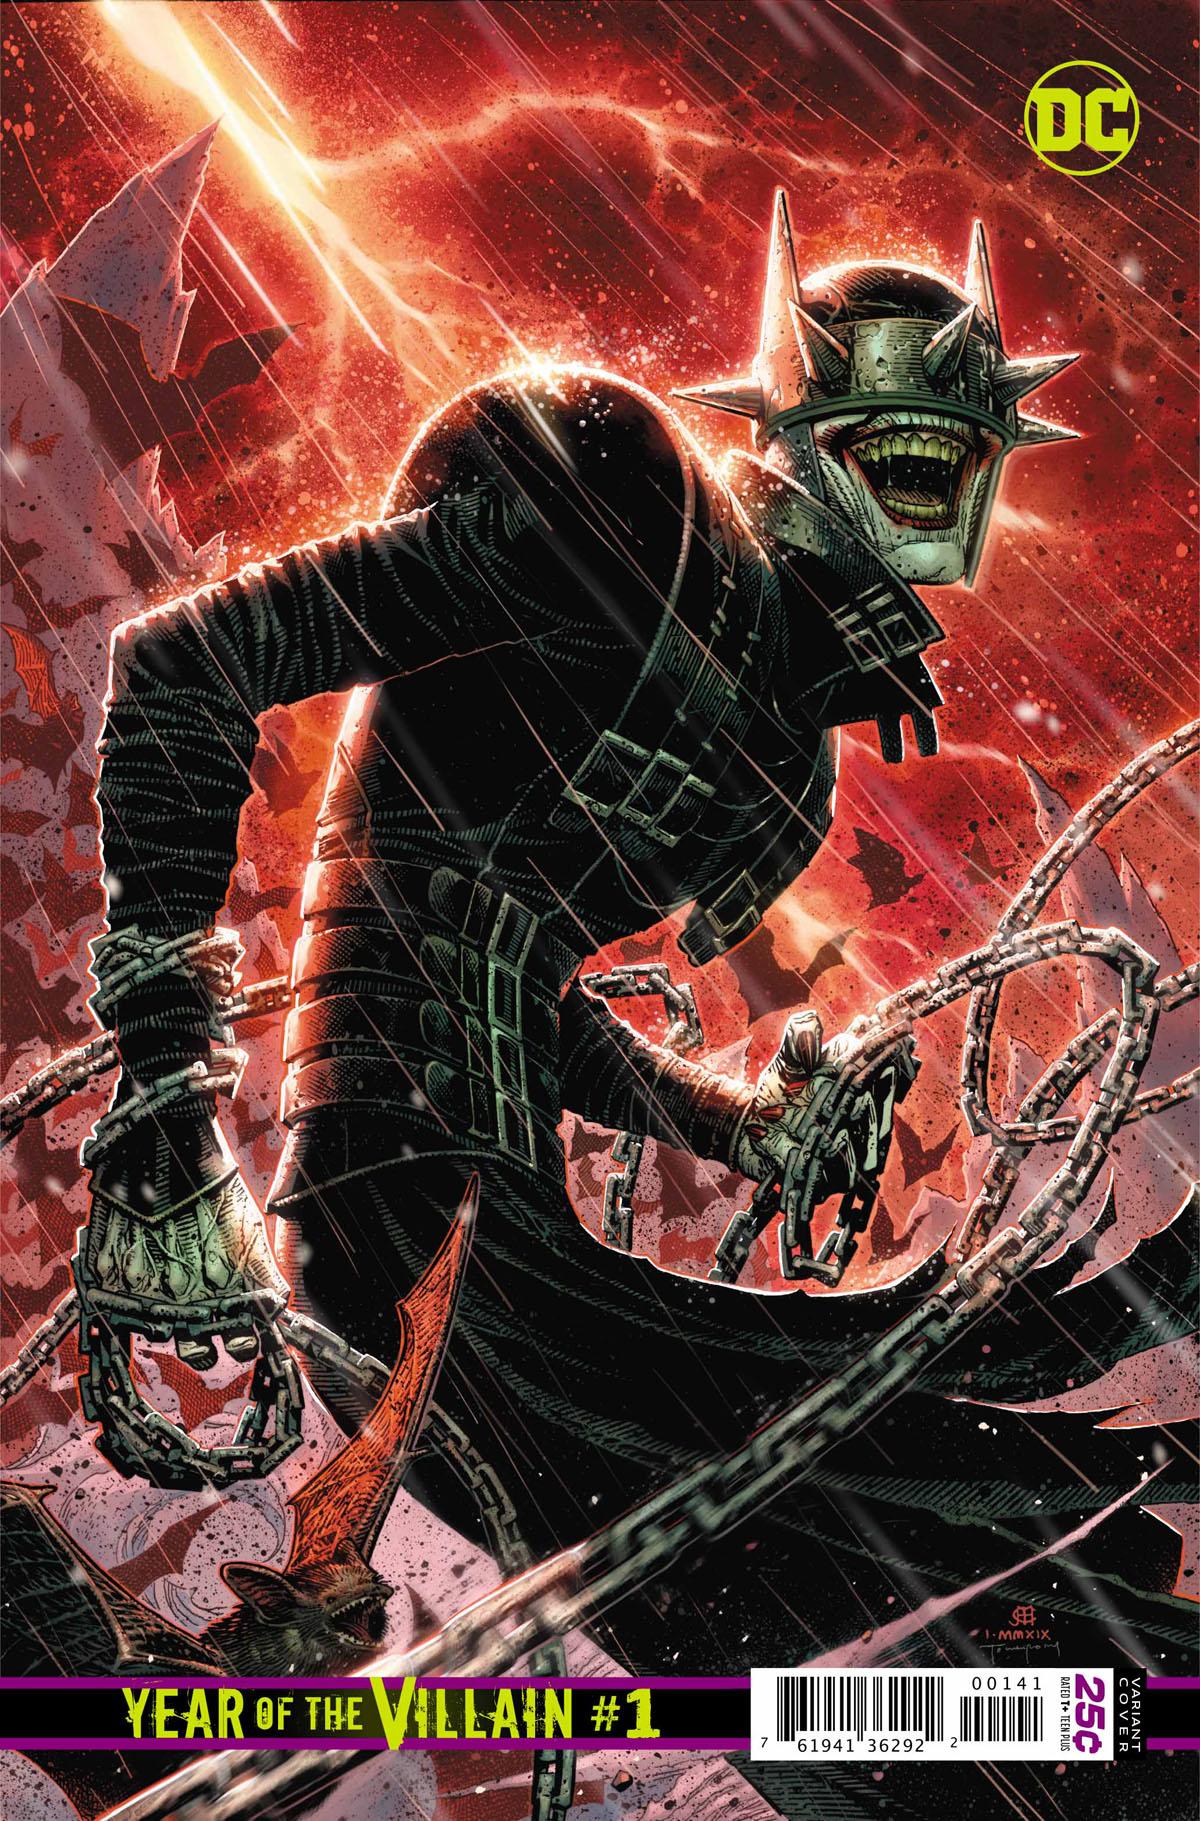 DC's Year of the Villain #1 The Batman Who Laughs variant cover